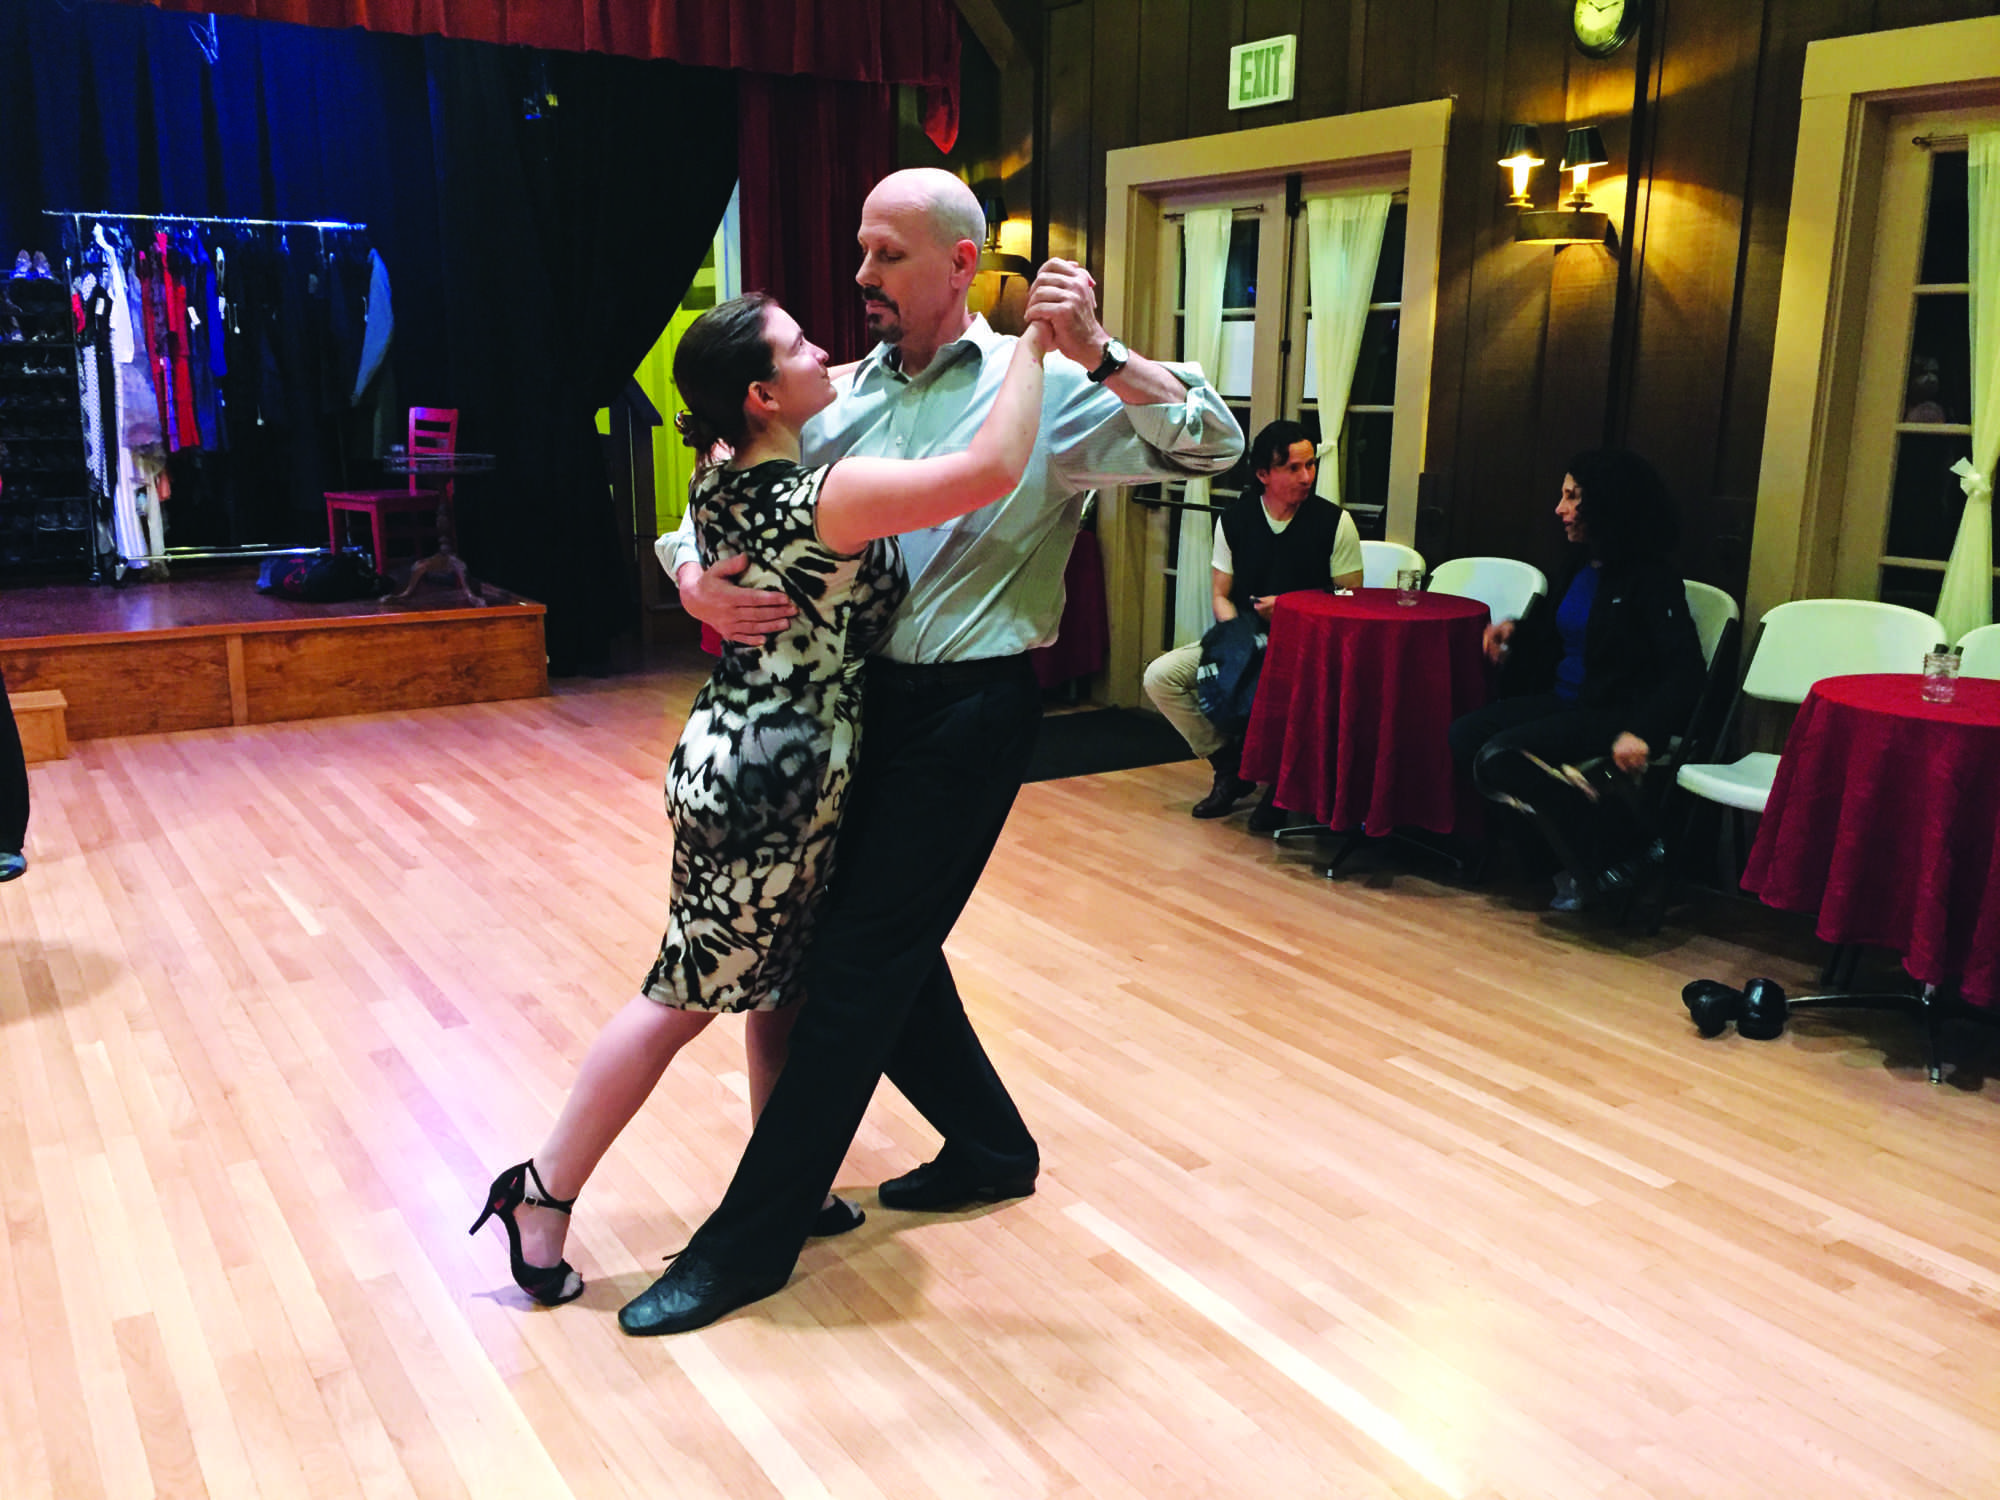 SOPHOMORE MADSEN SPARLER presents the Argentine tango with her partner. Sparler dances in a class of adults older than her by at least thirty years.